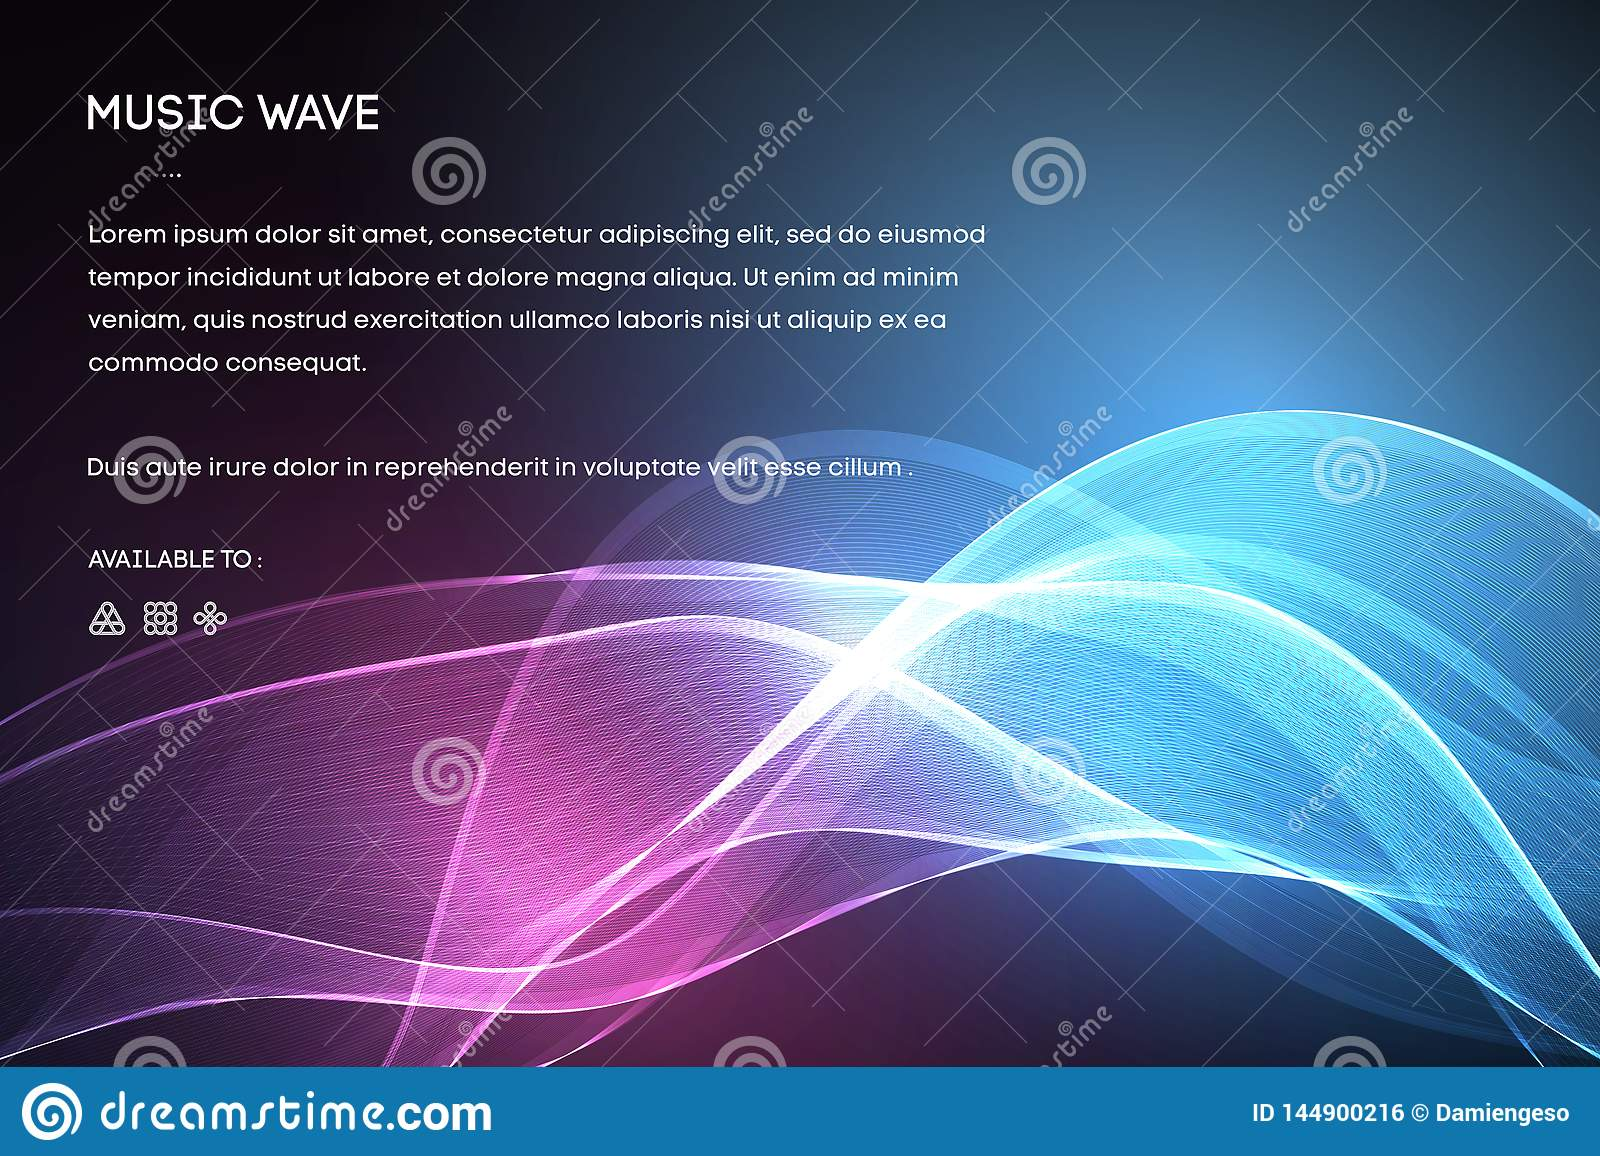 Sound Wave Vector   Vector Music Voice Vibration, Song Waveform